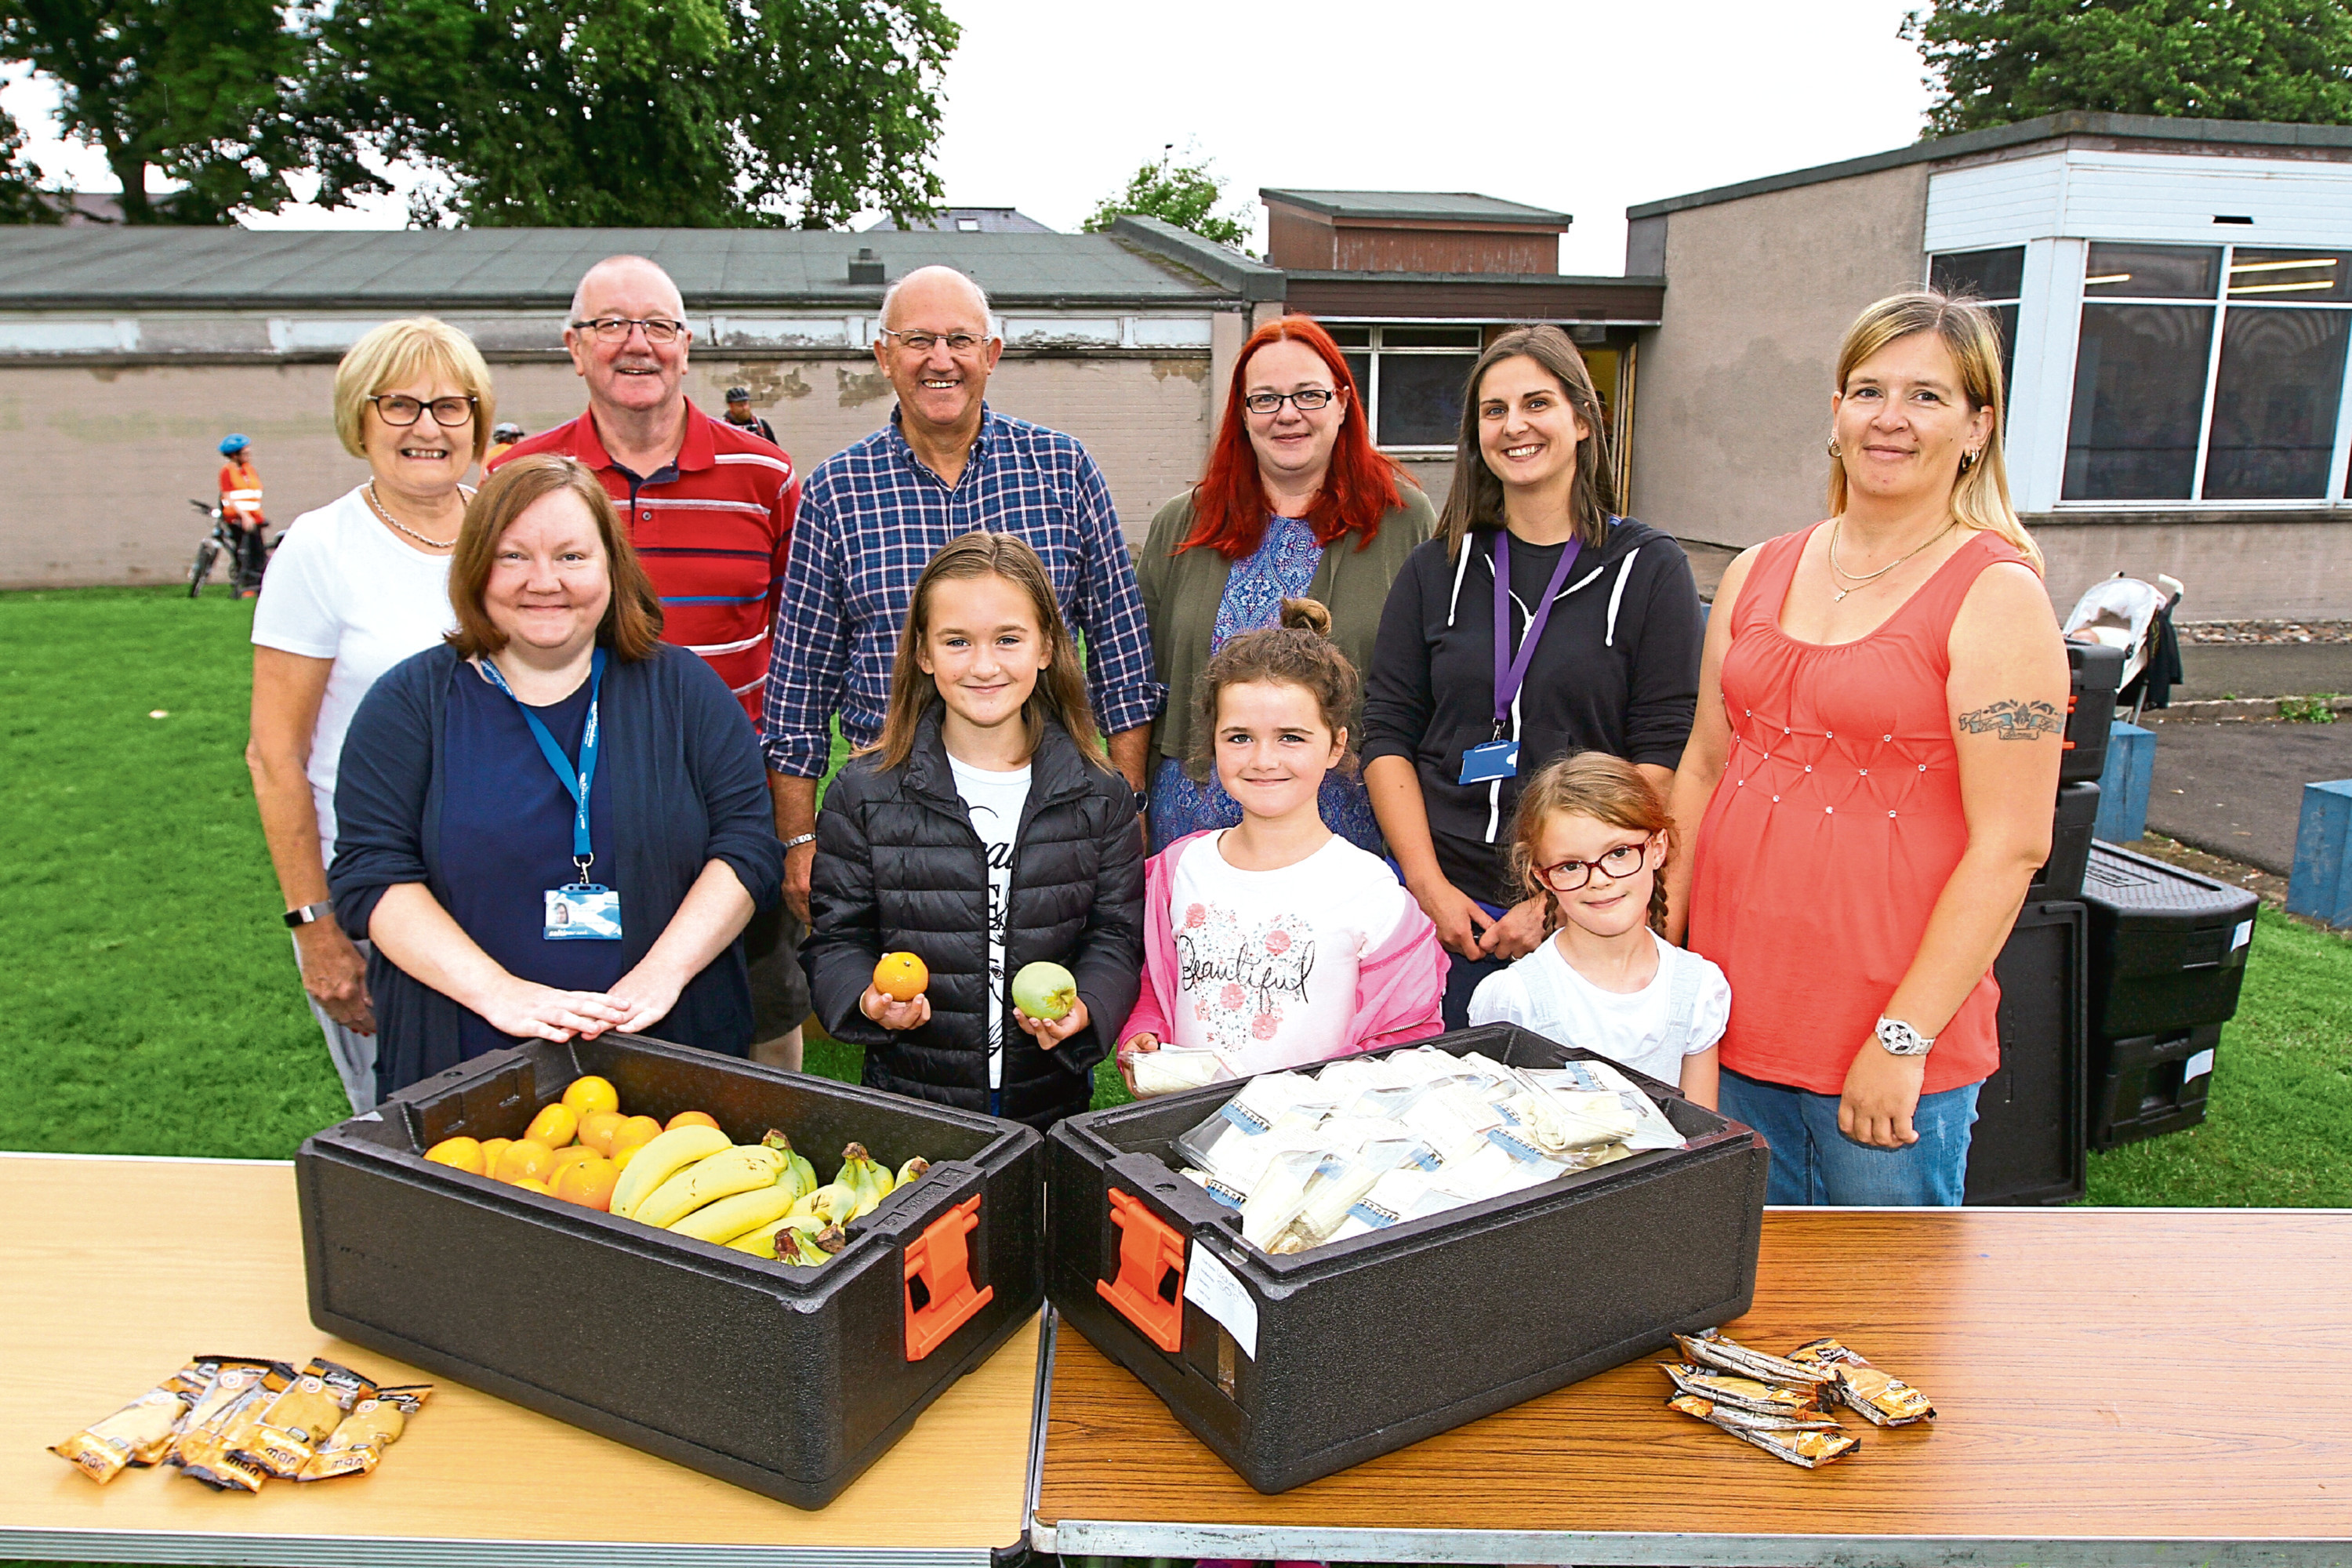 Dundee Bairns was handing out food, to Rosie Hutton (10), Annabel Hutton (7) and Piper Moir (6) at Lochee Fun Day